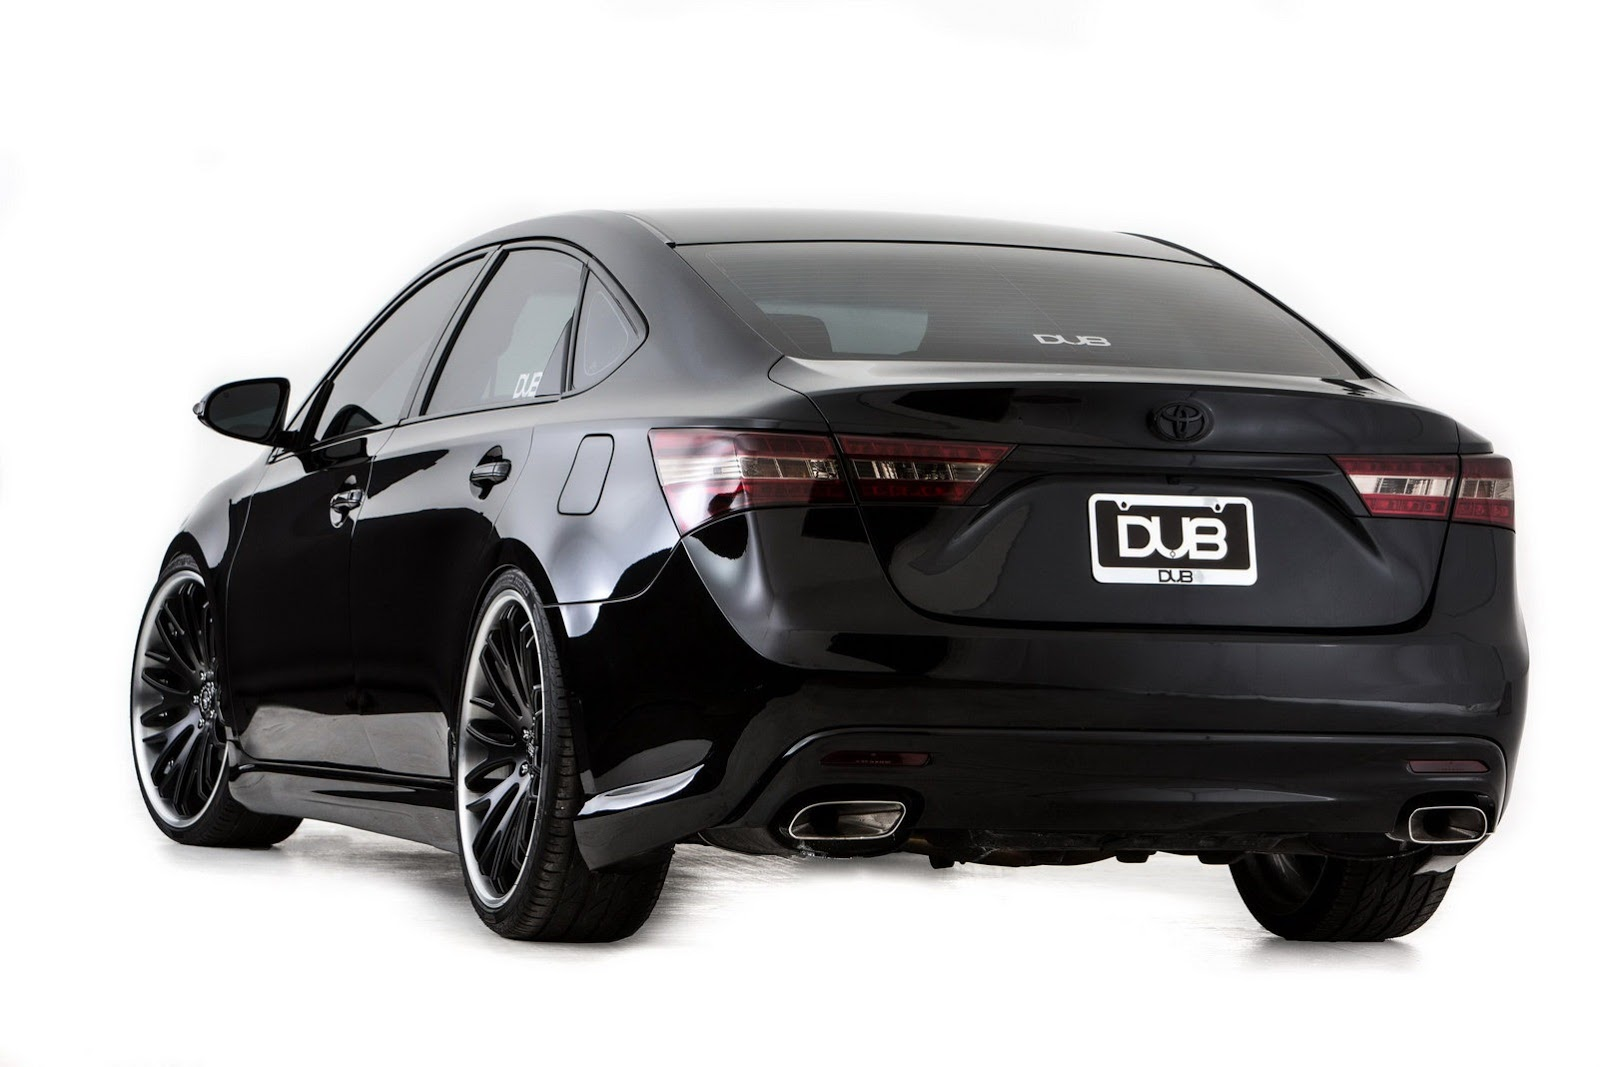 2013 toyota avalon dub edition photo gallery autoevolution. Black Bedroom Furniture Sets. Home Design Ideas